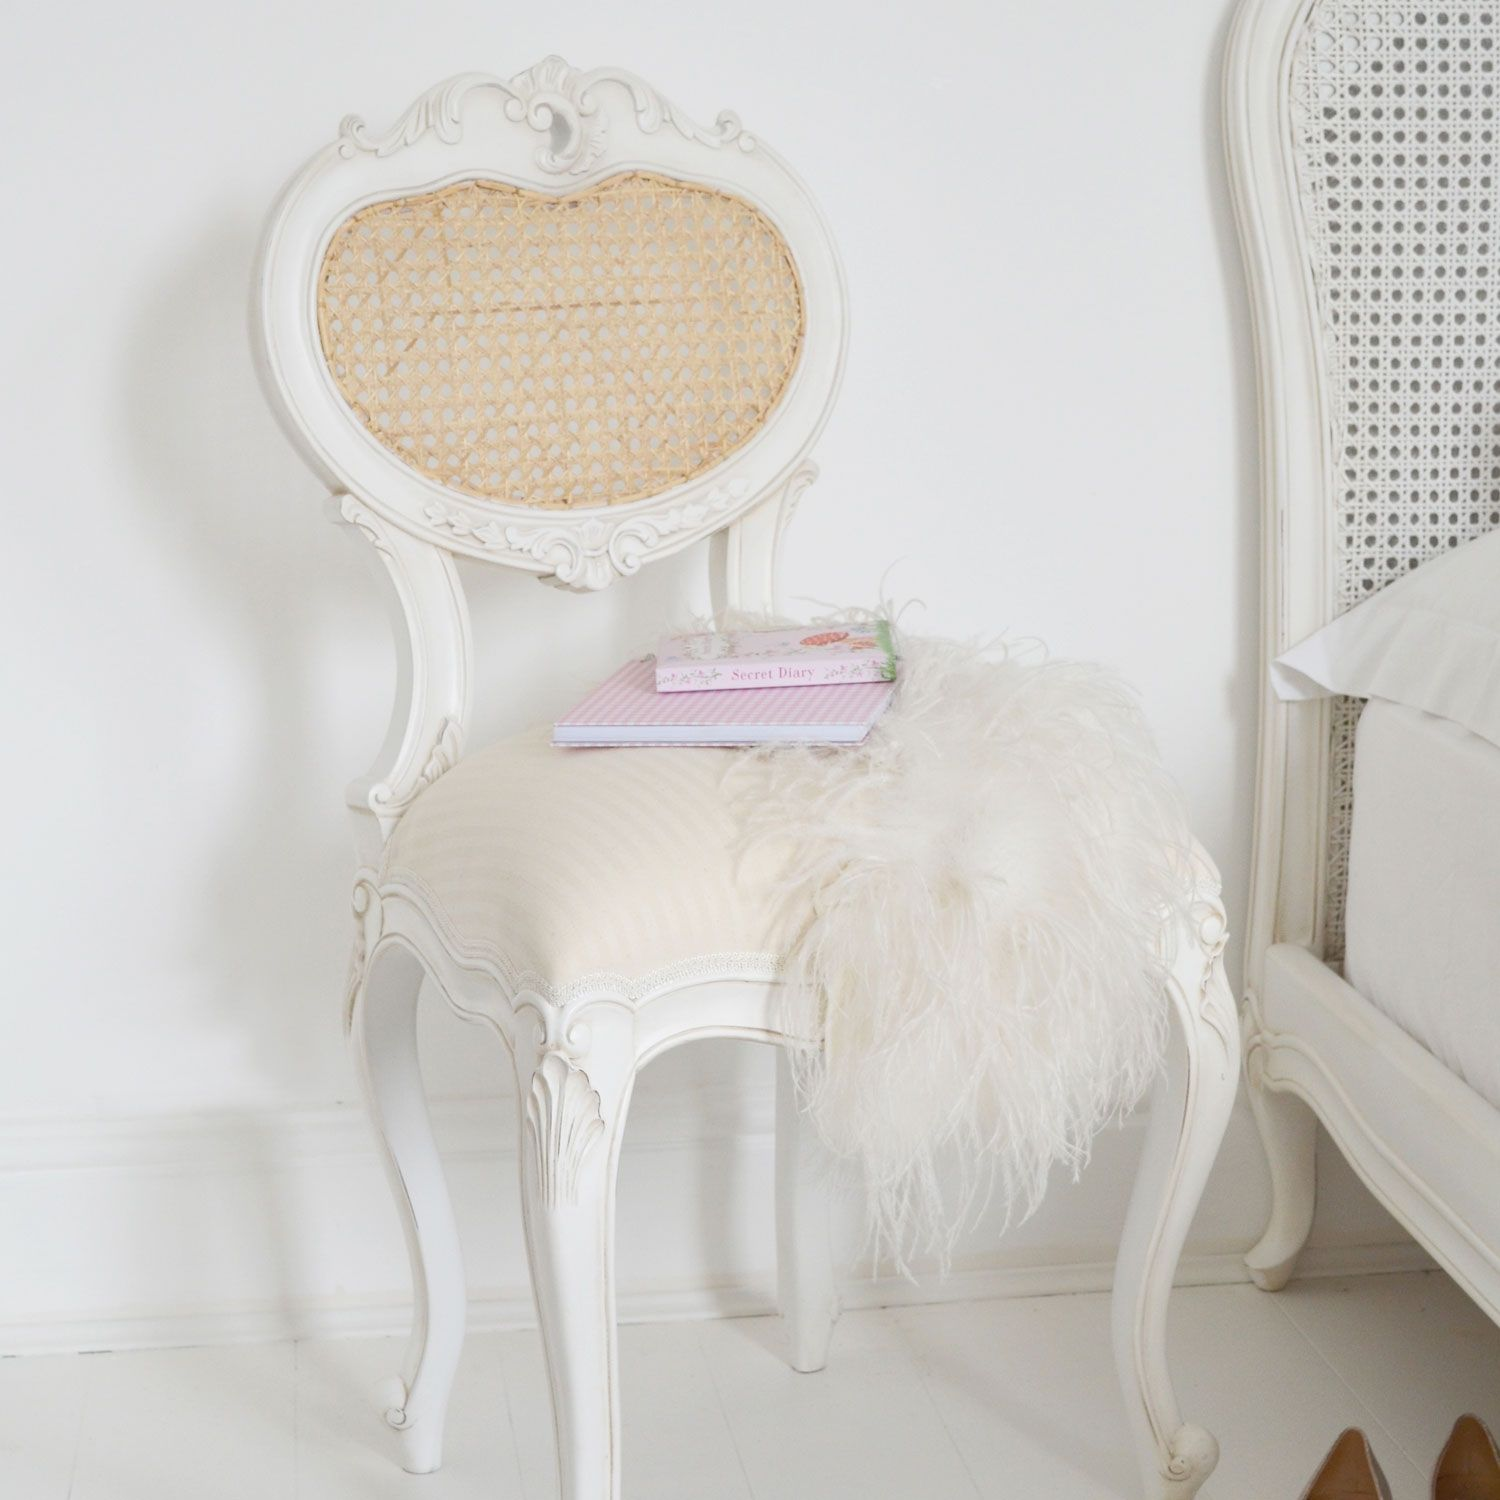 Classical White Bedroom Chair  White bedroom chair, Bedroom chair